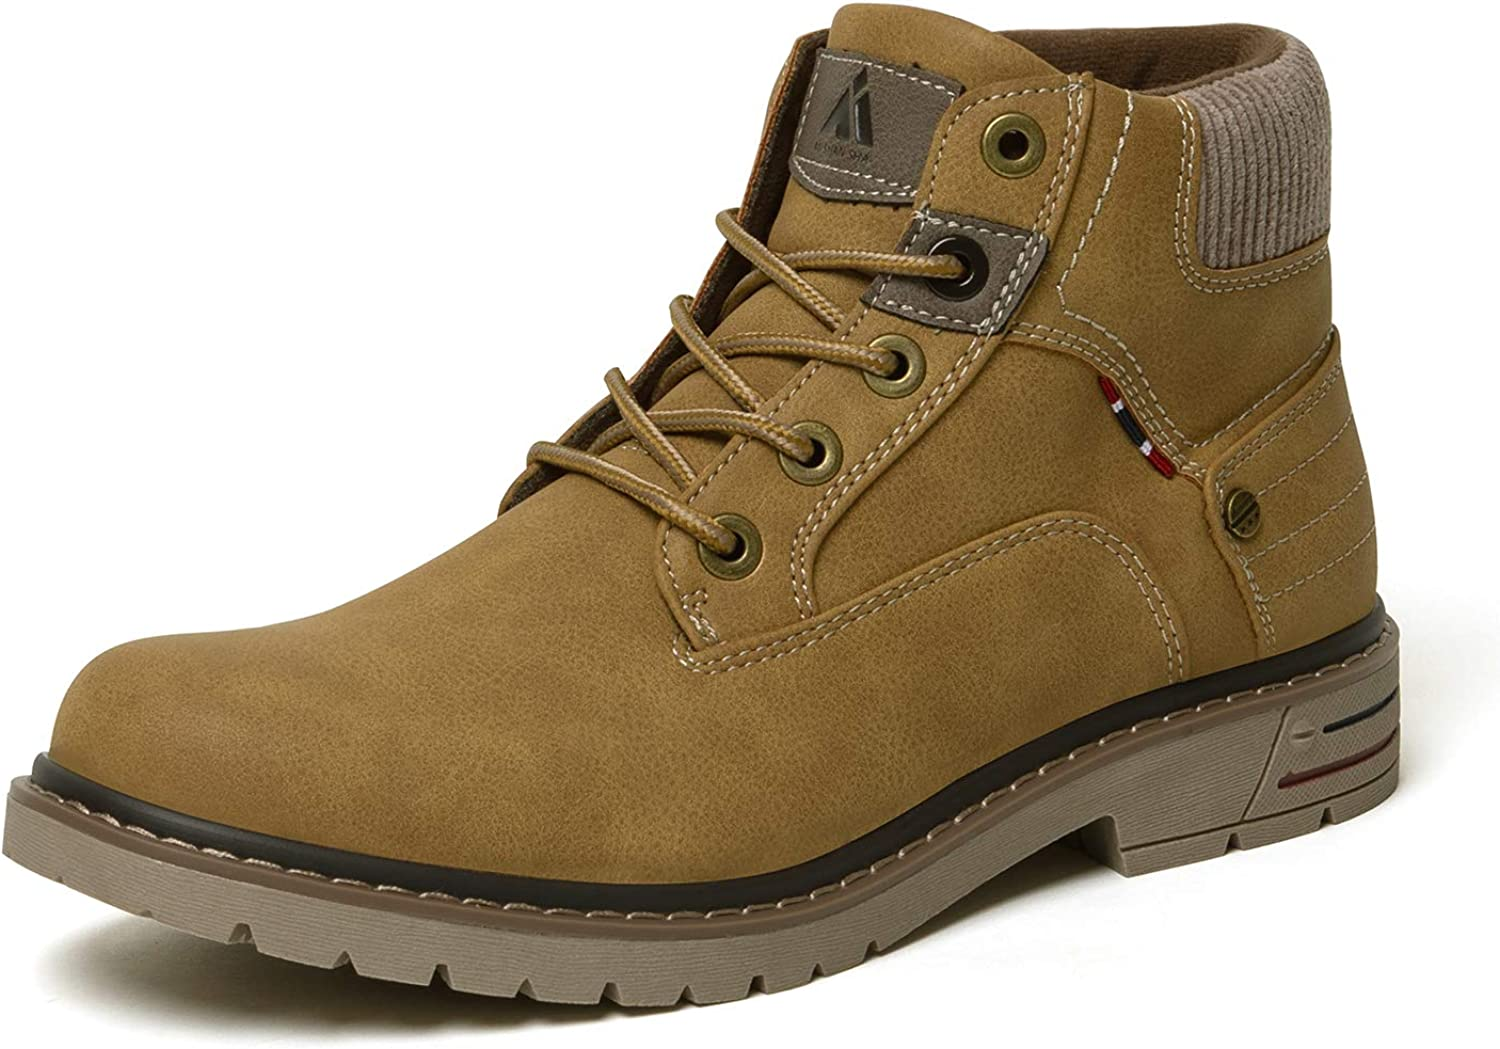 Men's Mid Hiking Boots Outdoor Water Resistant Non Slip Ankle Casual Boot